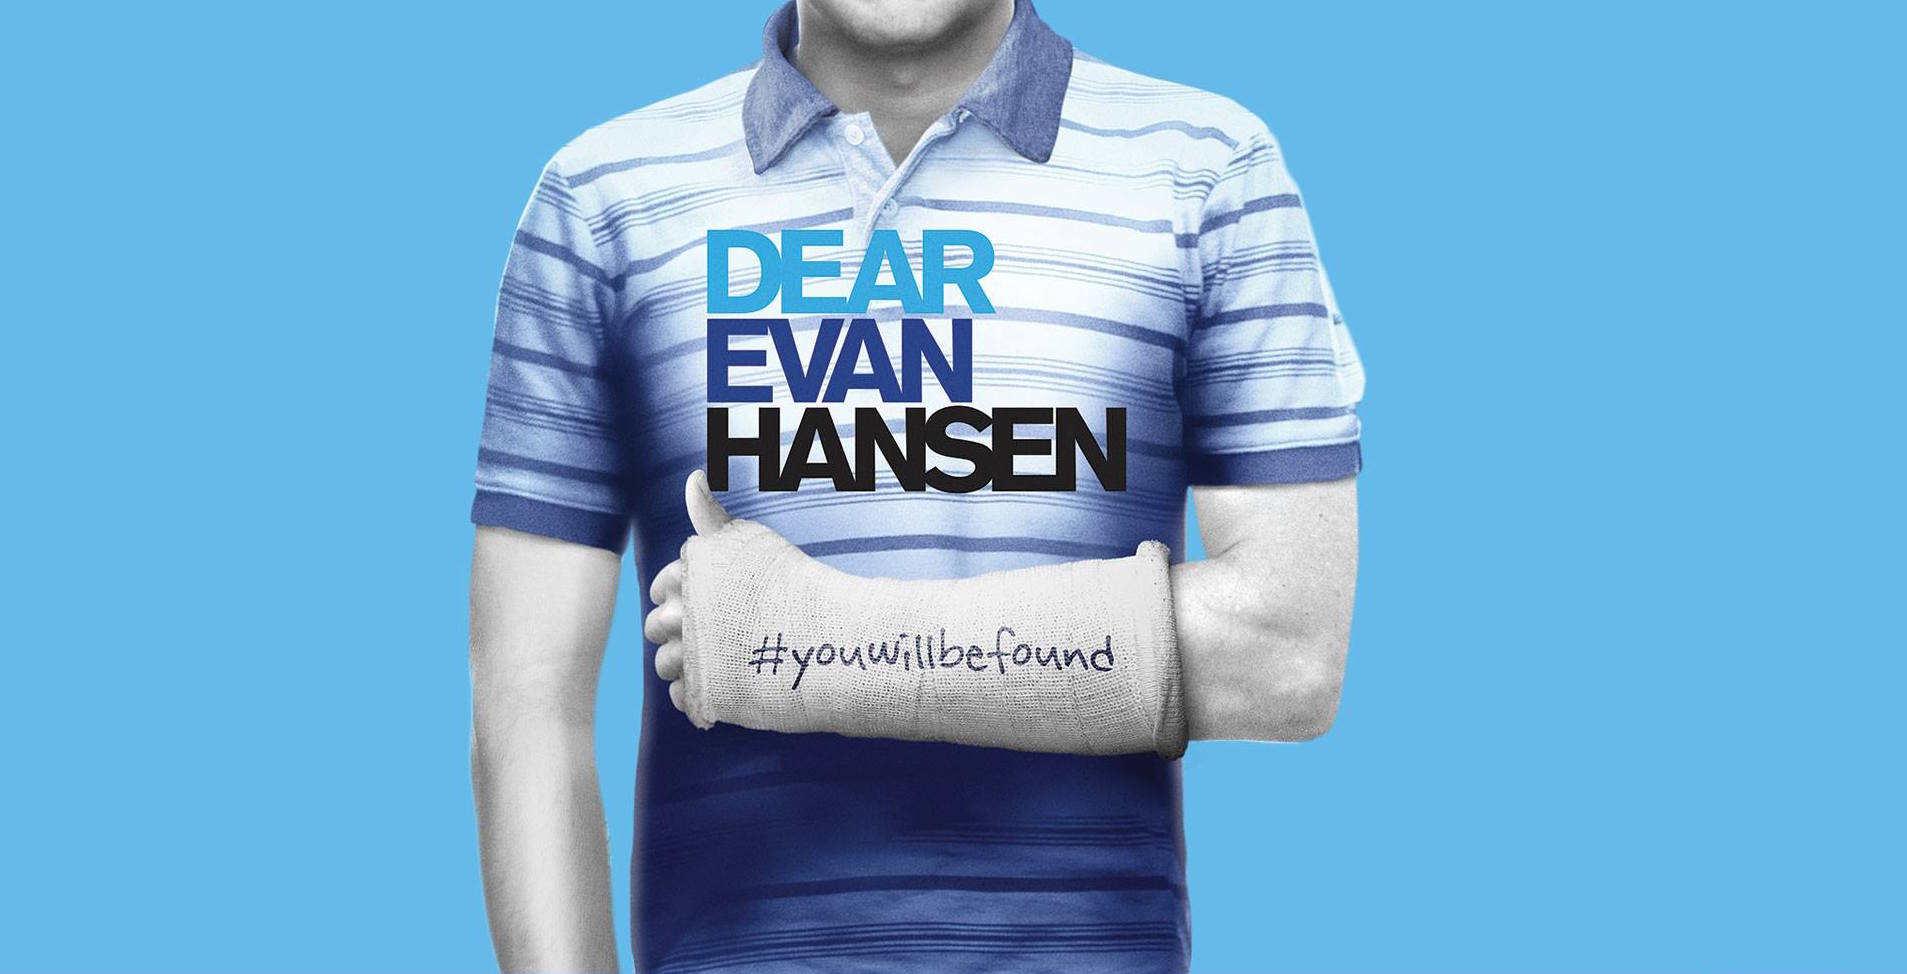 Buy Dear Evan Hansen Tickets in St. Louis.